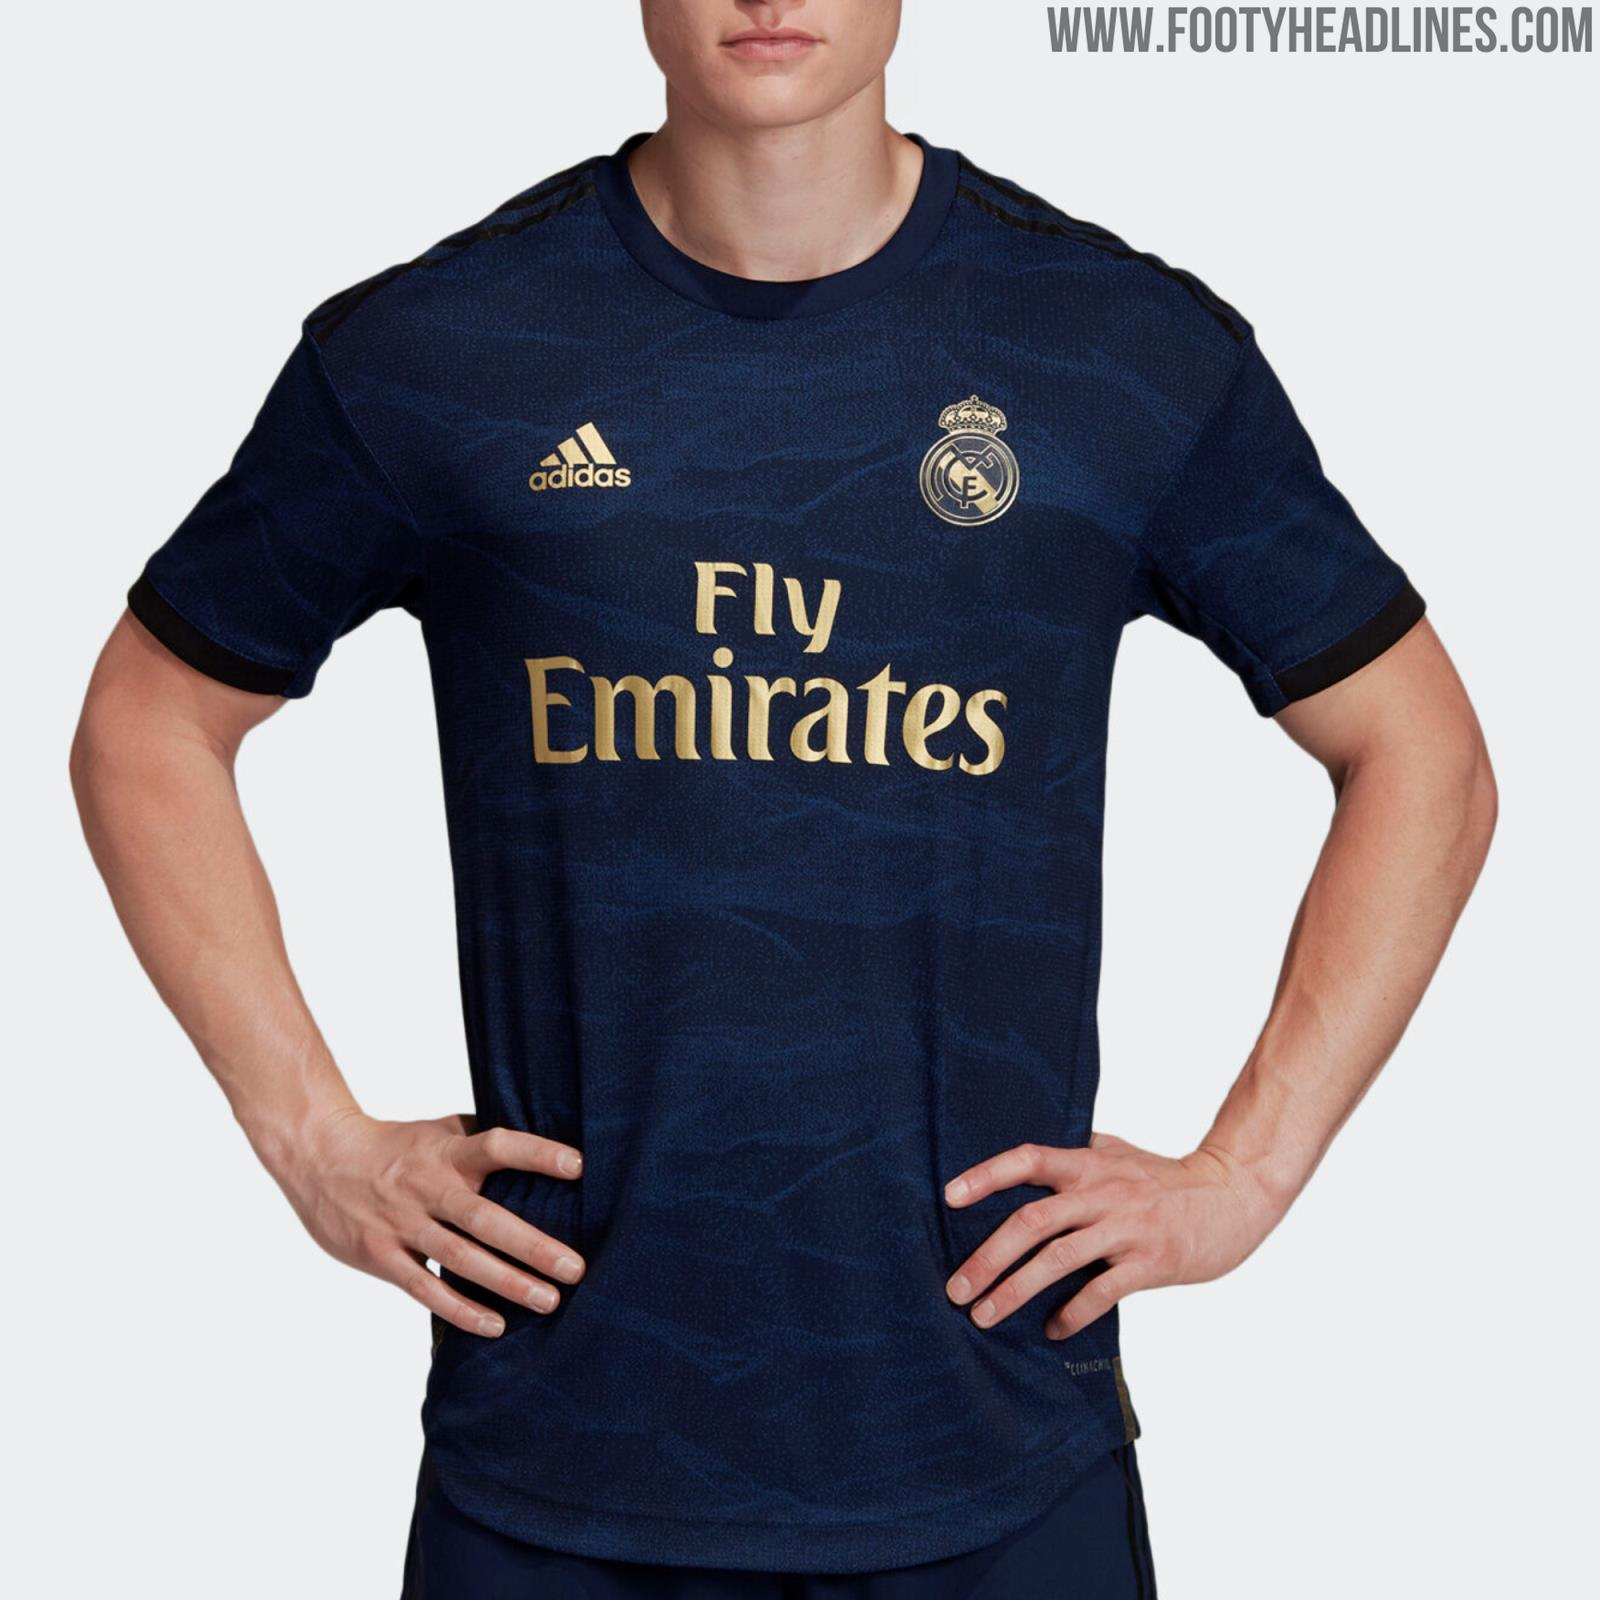 Real Madrid Away Kit Real Madrid 19-20 Away Kit Released - Footy Headlines